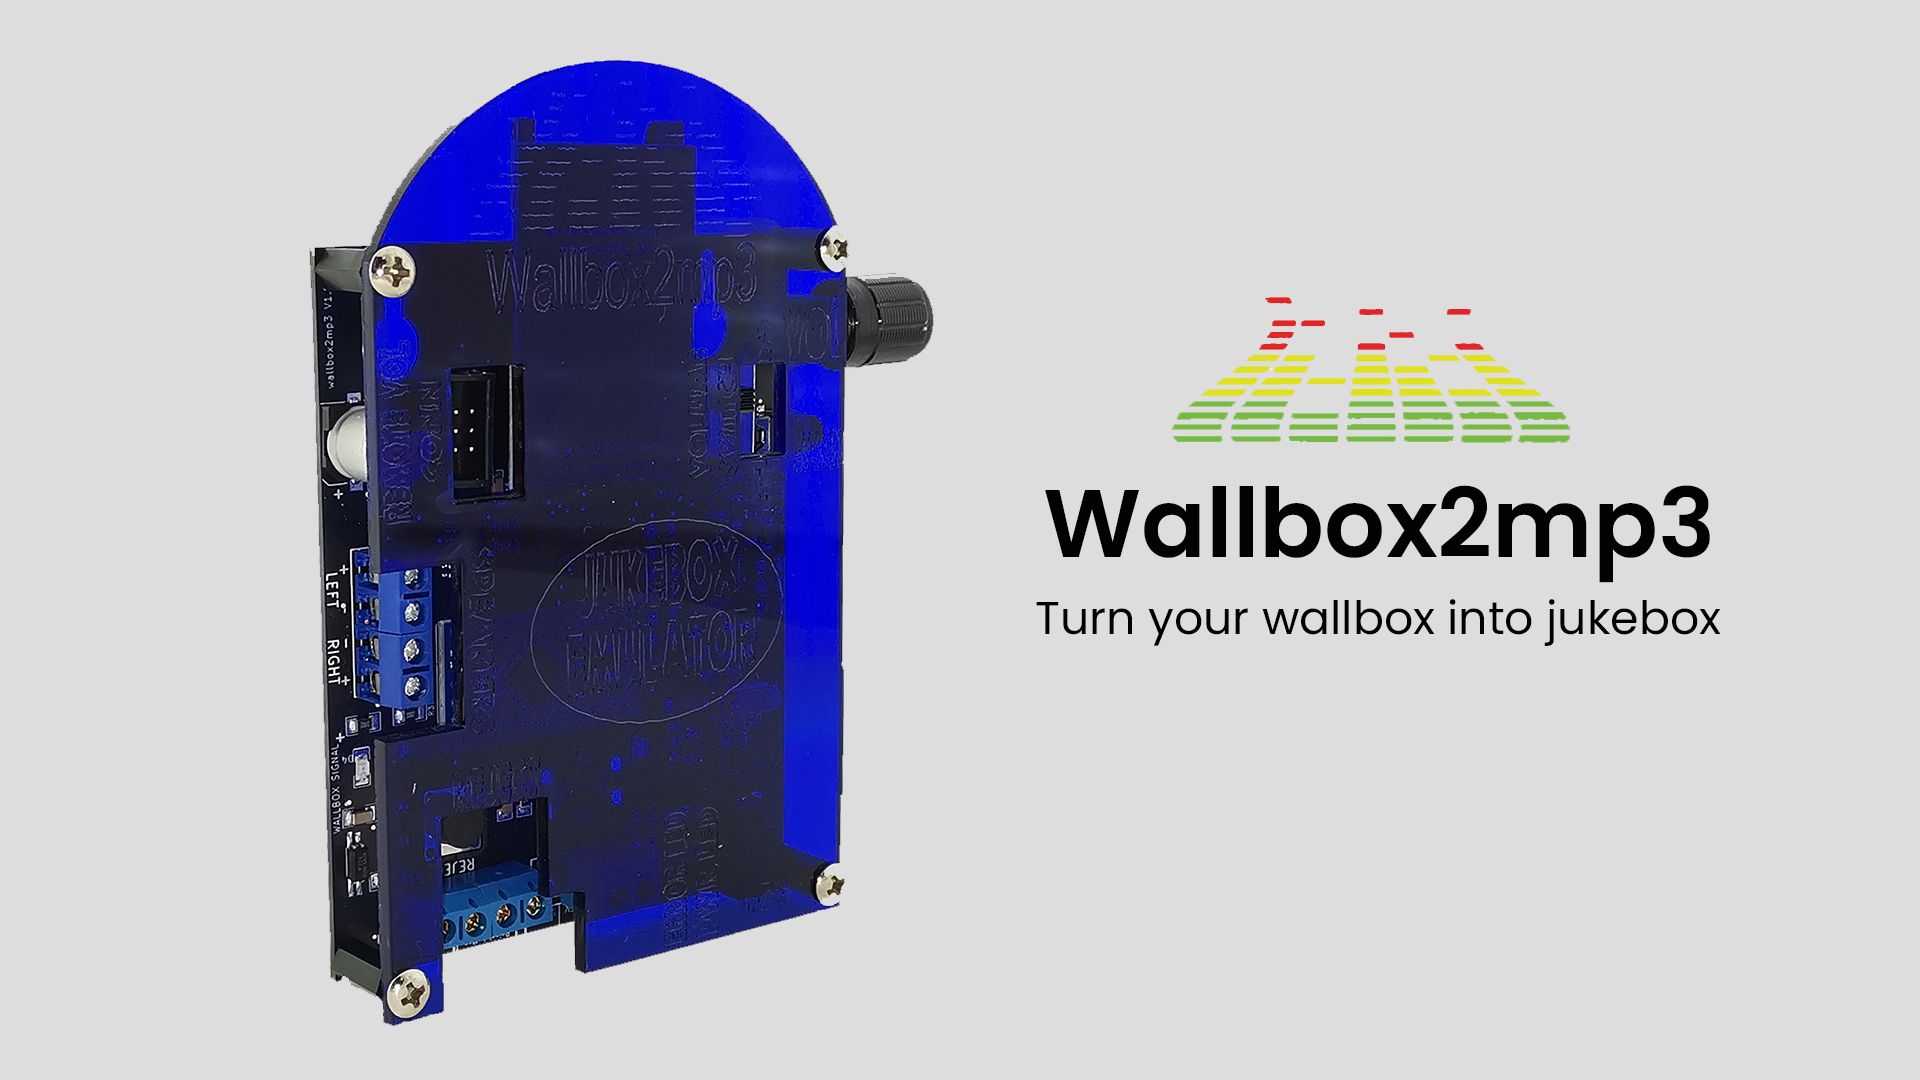 WALLBOX2MP3